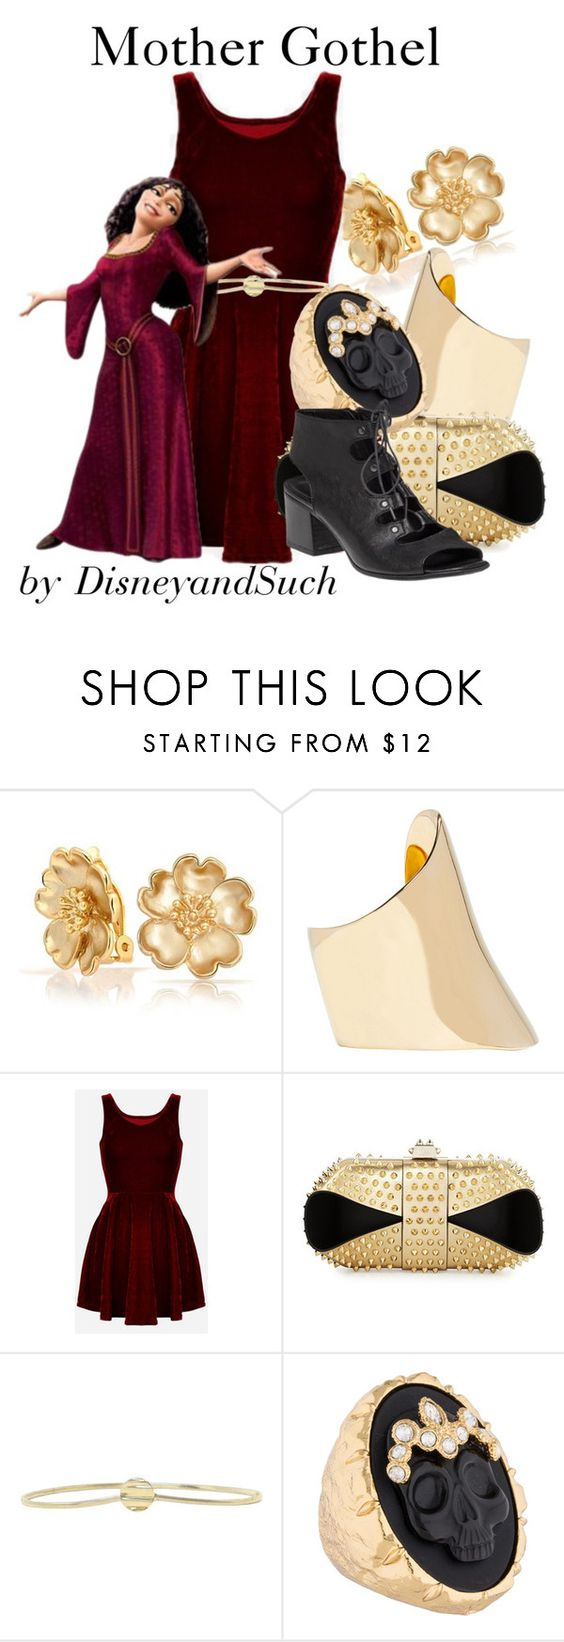 """""""Mother Gothel"""" by disneyandsuch ❤ liked on Polyvore featuring Bling Jewelry, Maiyet, Christian Louboutin, Alexis Bittar, 275 Central, disney, tangled and WhereIsMySuperSuit"""